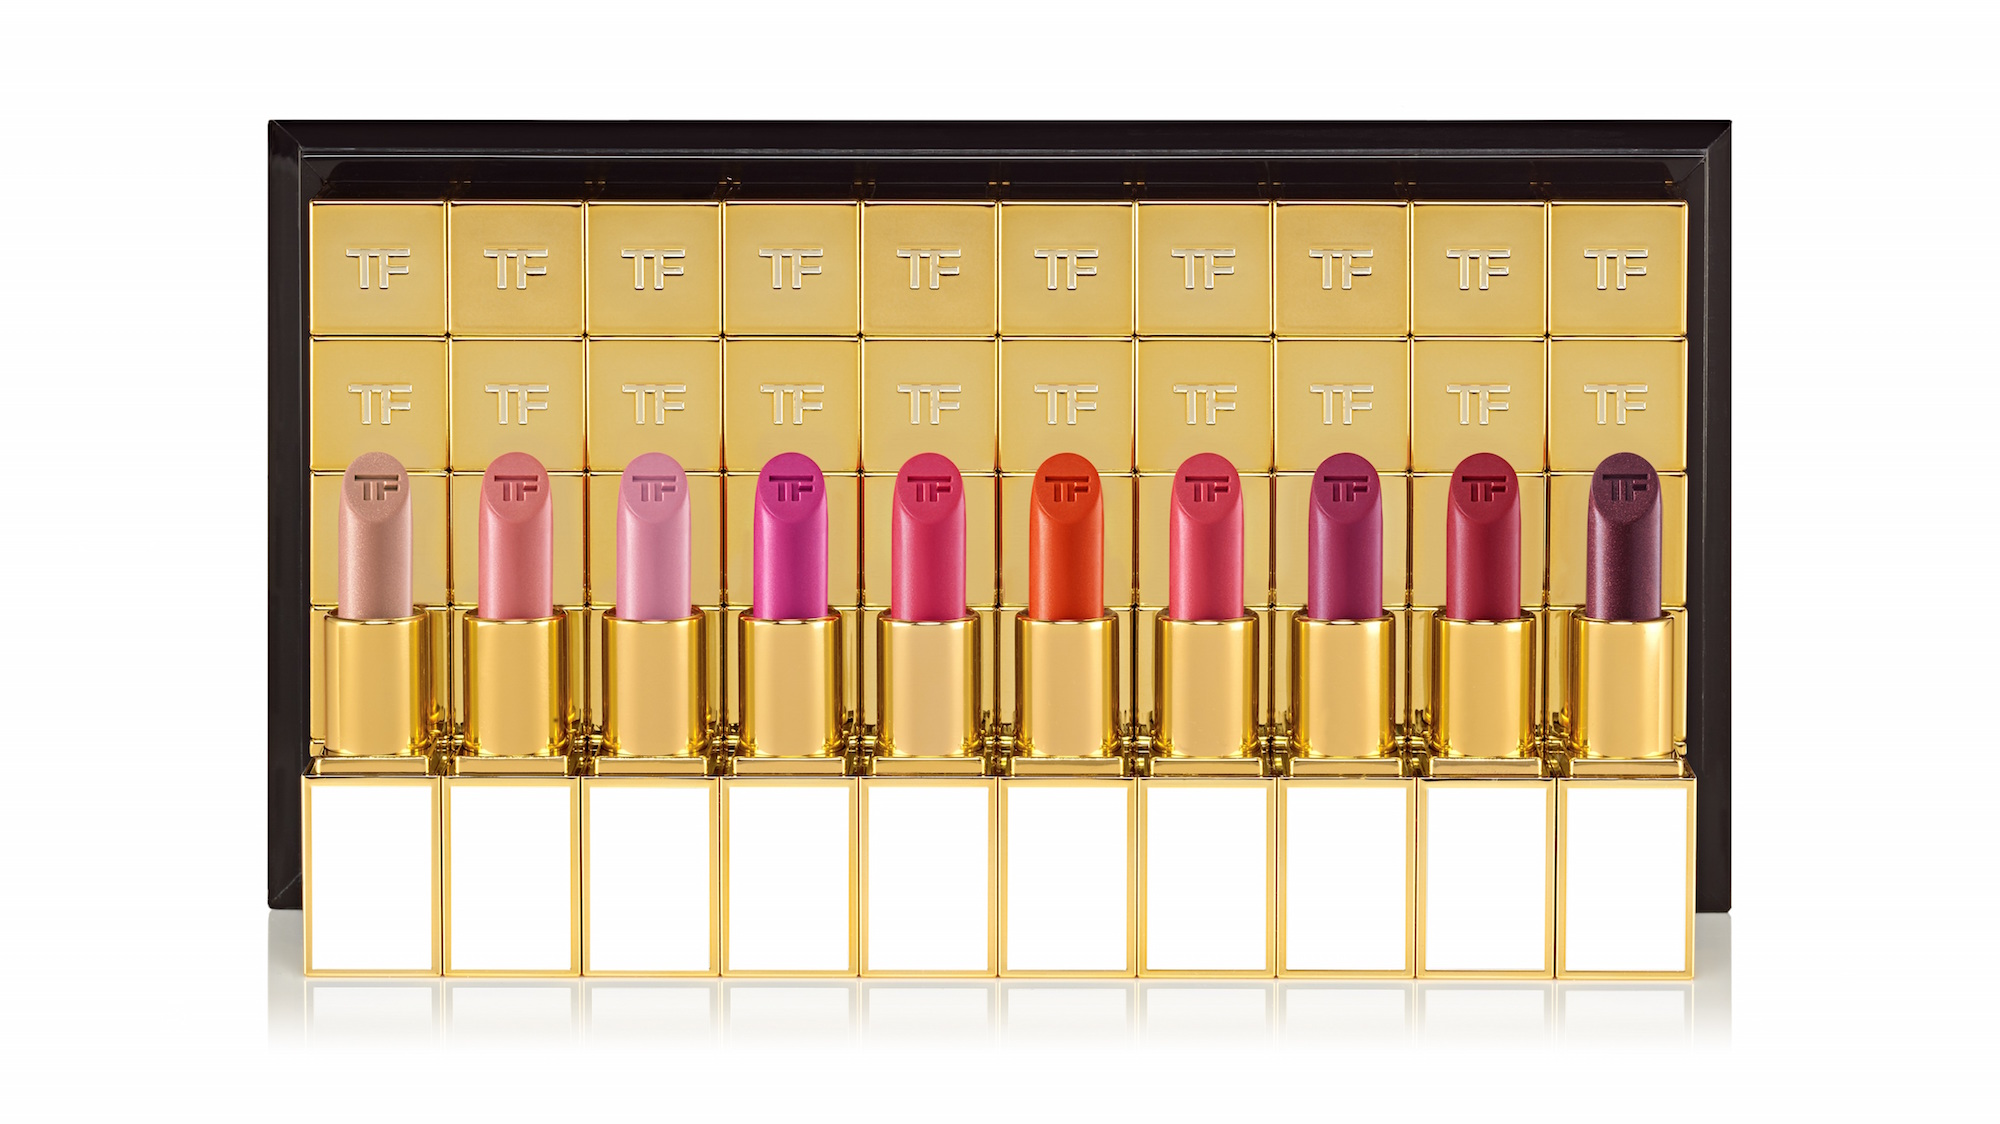 Over 50 new Tom Ford lipsticks are dropping tomorrow so take out a bank loan